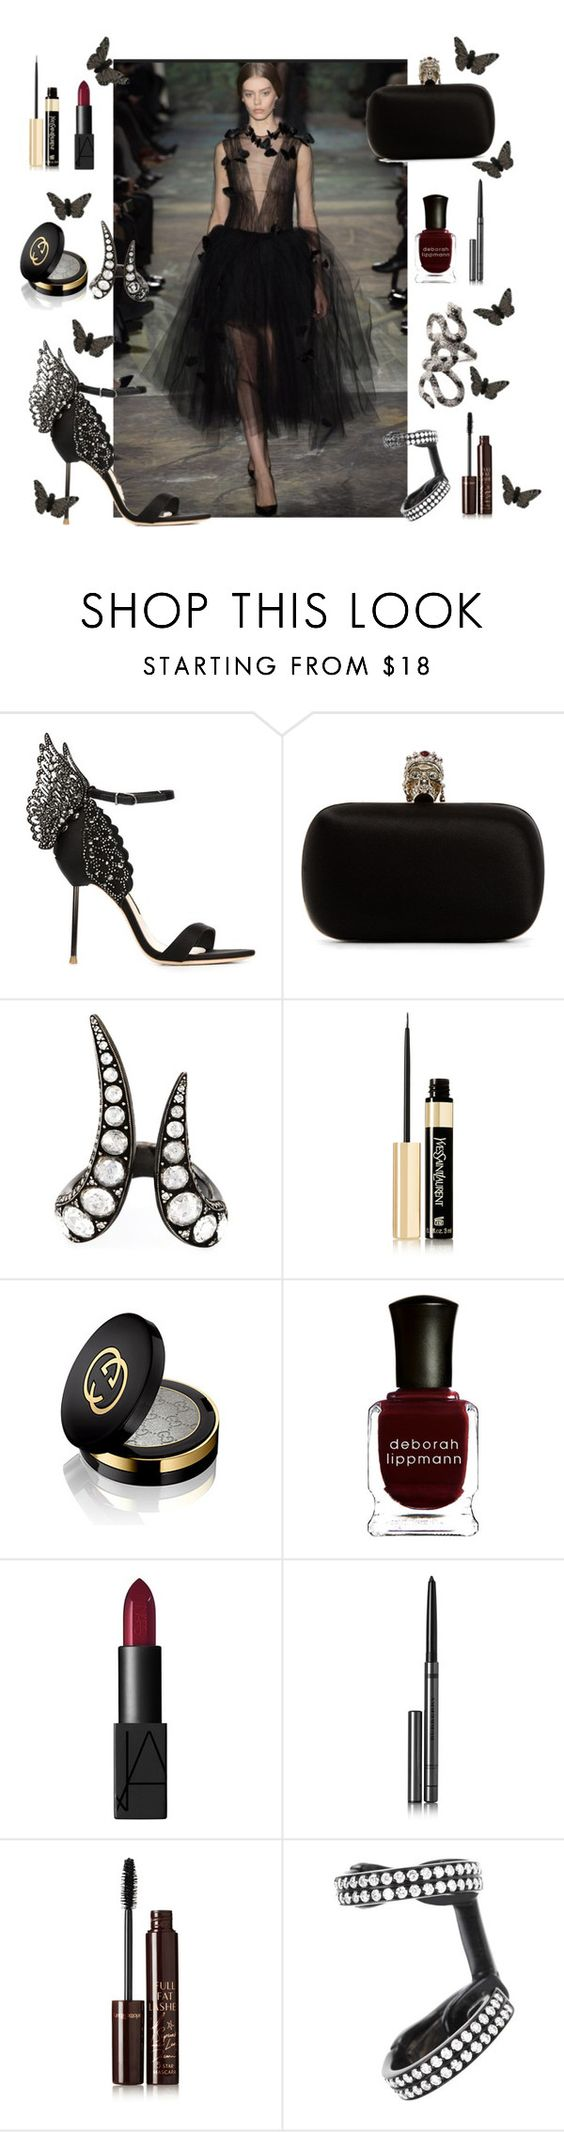 """""""A walk on the dark side in Valentino"""" by anujabalaji ❤ liked on Polyvore featuring Sophia Webster, Alexander McQueen, Monan, Yves Saint Laurent, Gucci, Deborah Lippmann, NARS Cosmetics, Burberry, Charlotte Tilbury and Repossi"""